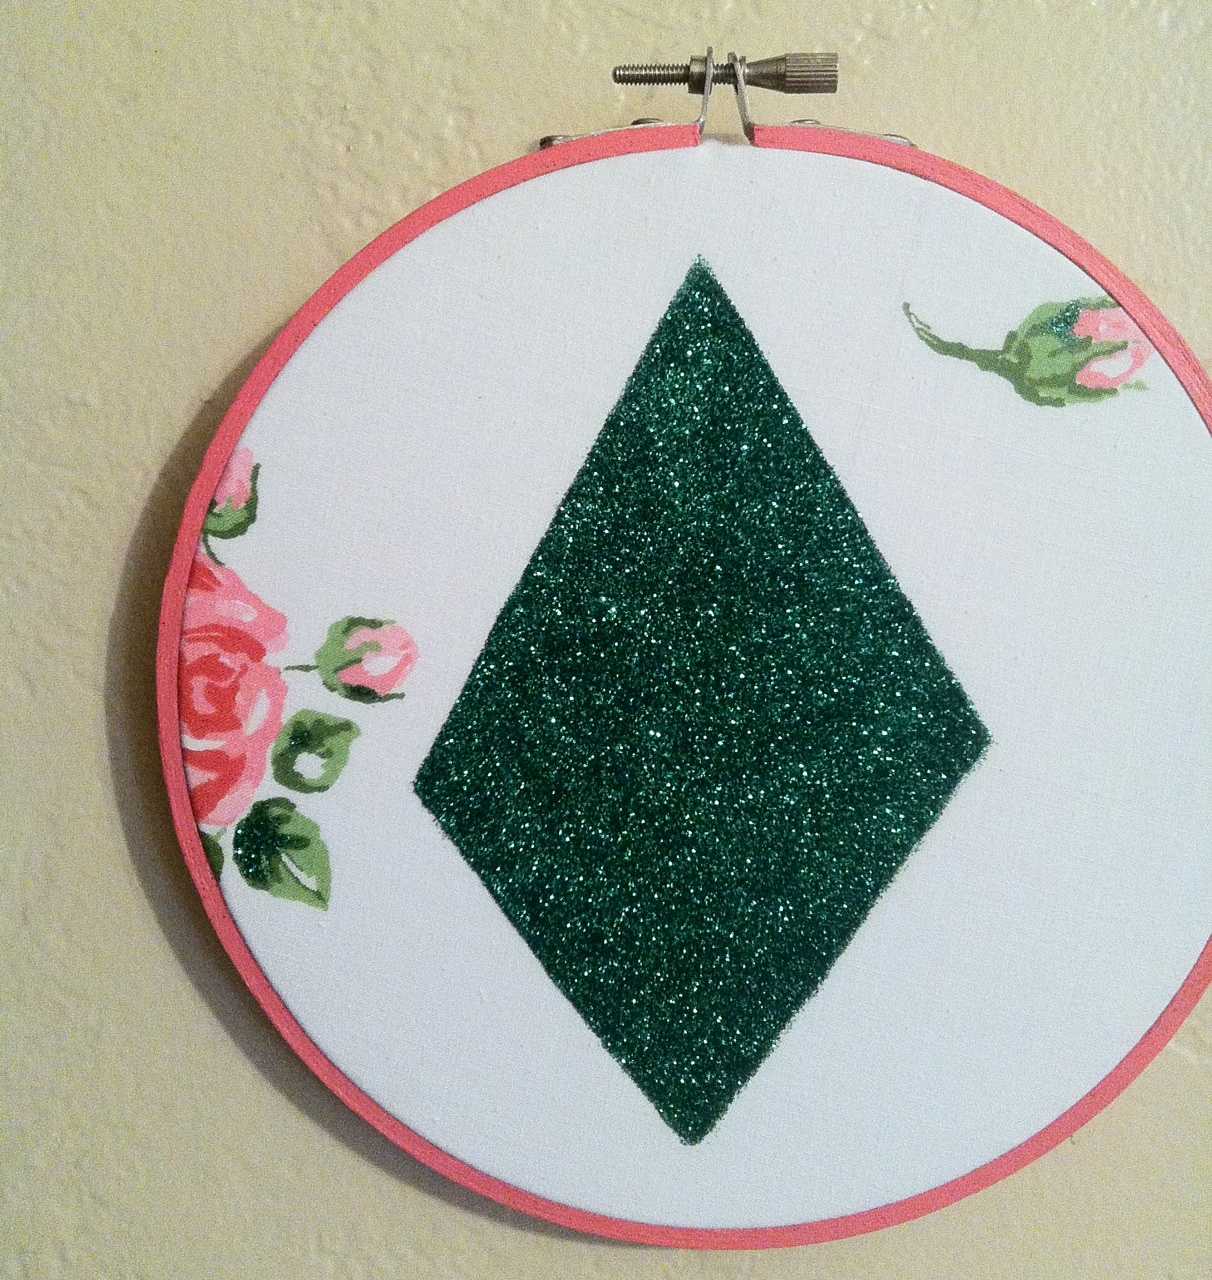 Newest piece in the geometry kitsch series. This one reminds me of Emerald City.